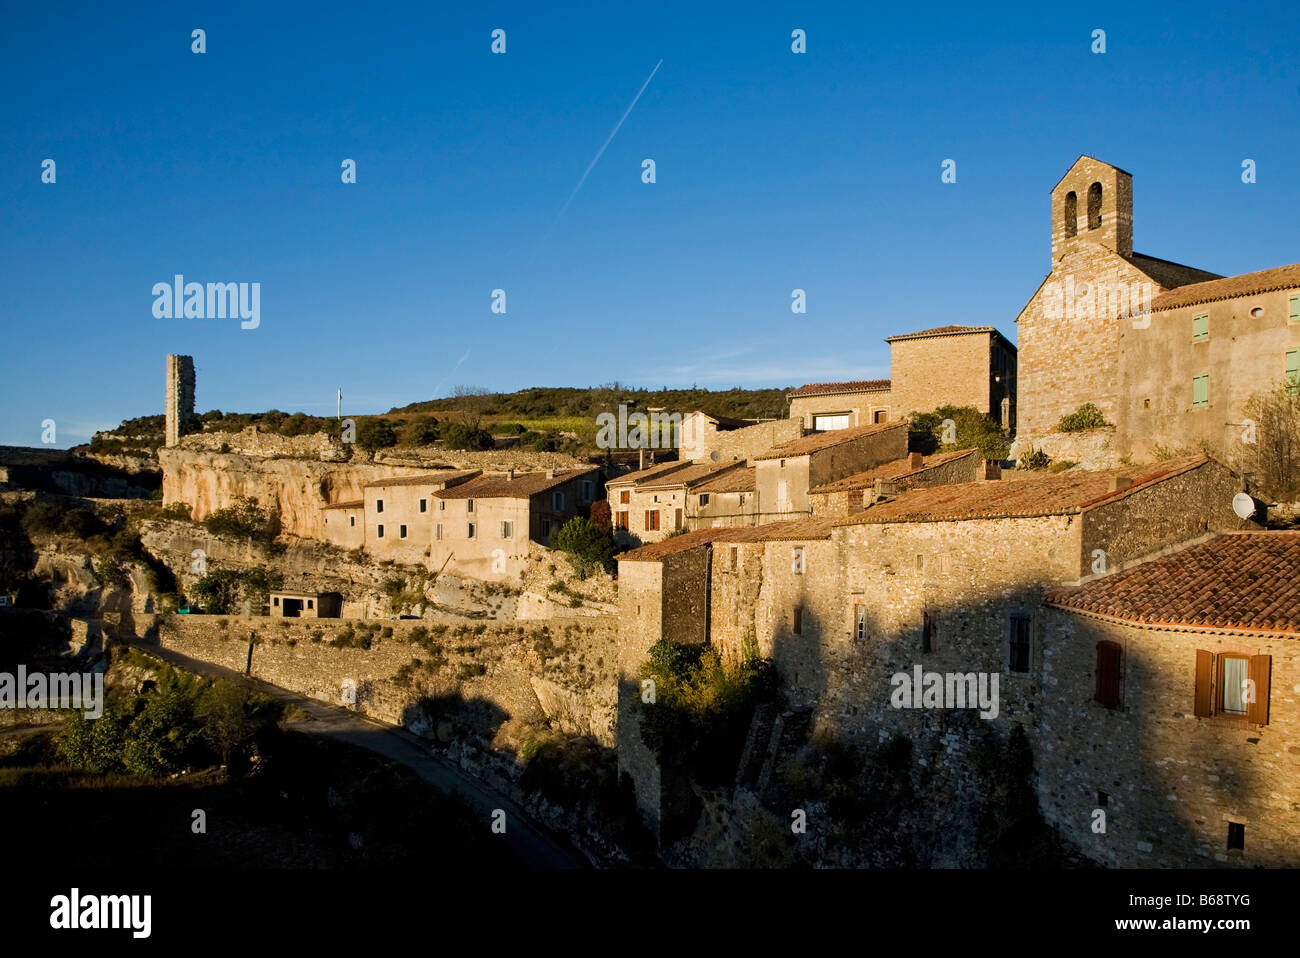 Candela Tower and Village, Minerve, Languedoc-Roussillon, France - Stock Image